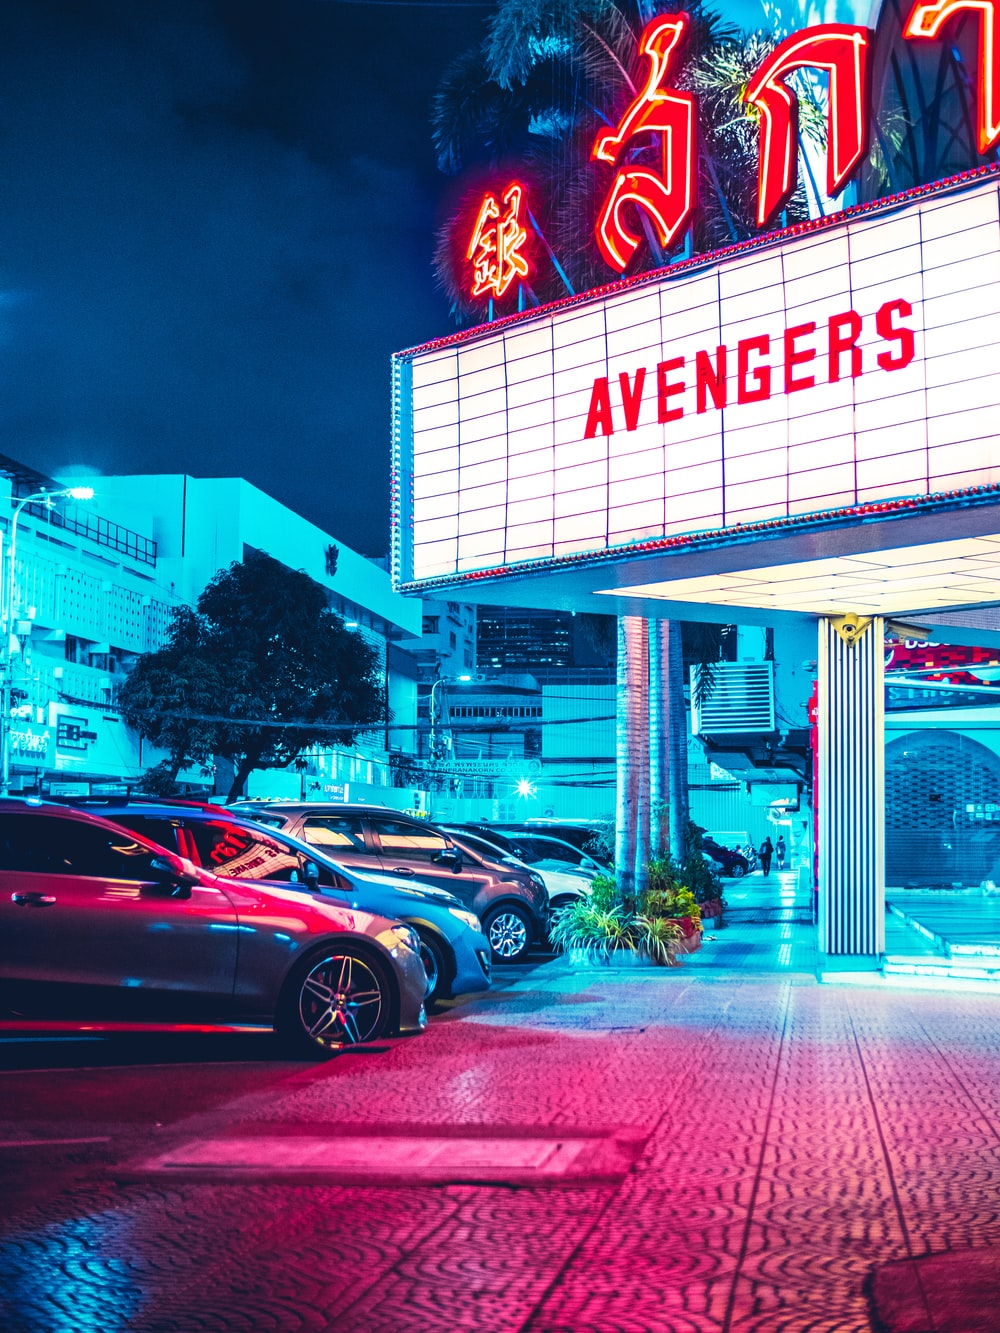 vehicles parked beside Avengers signage